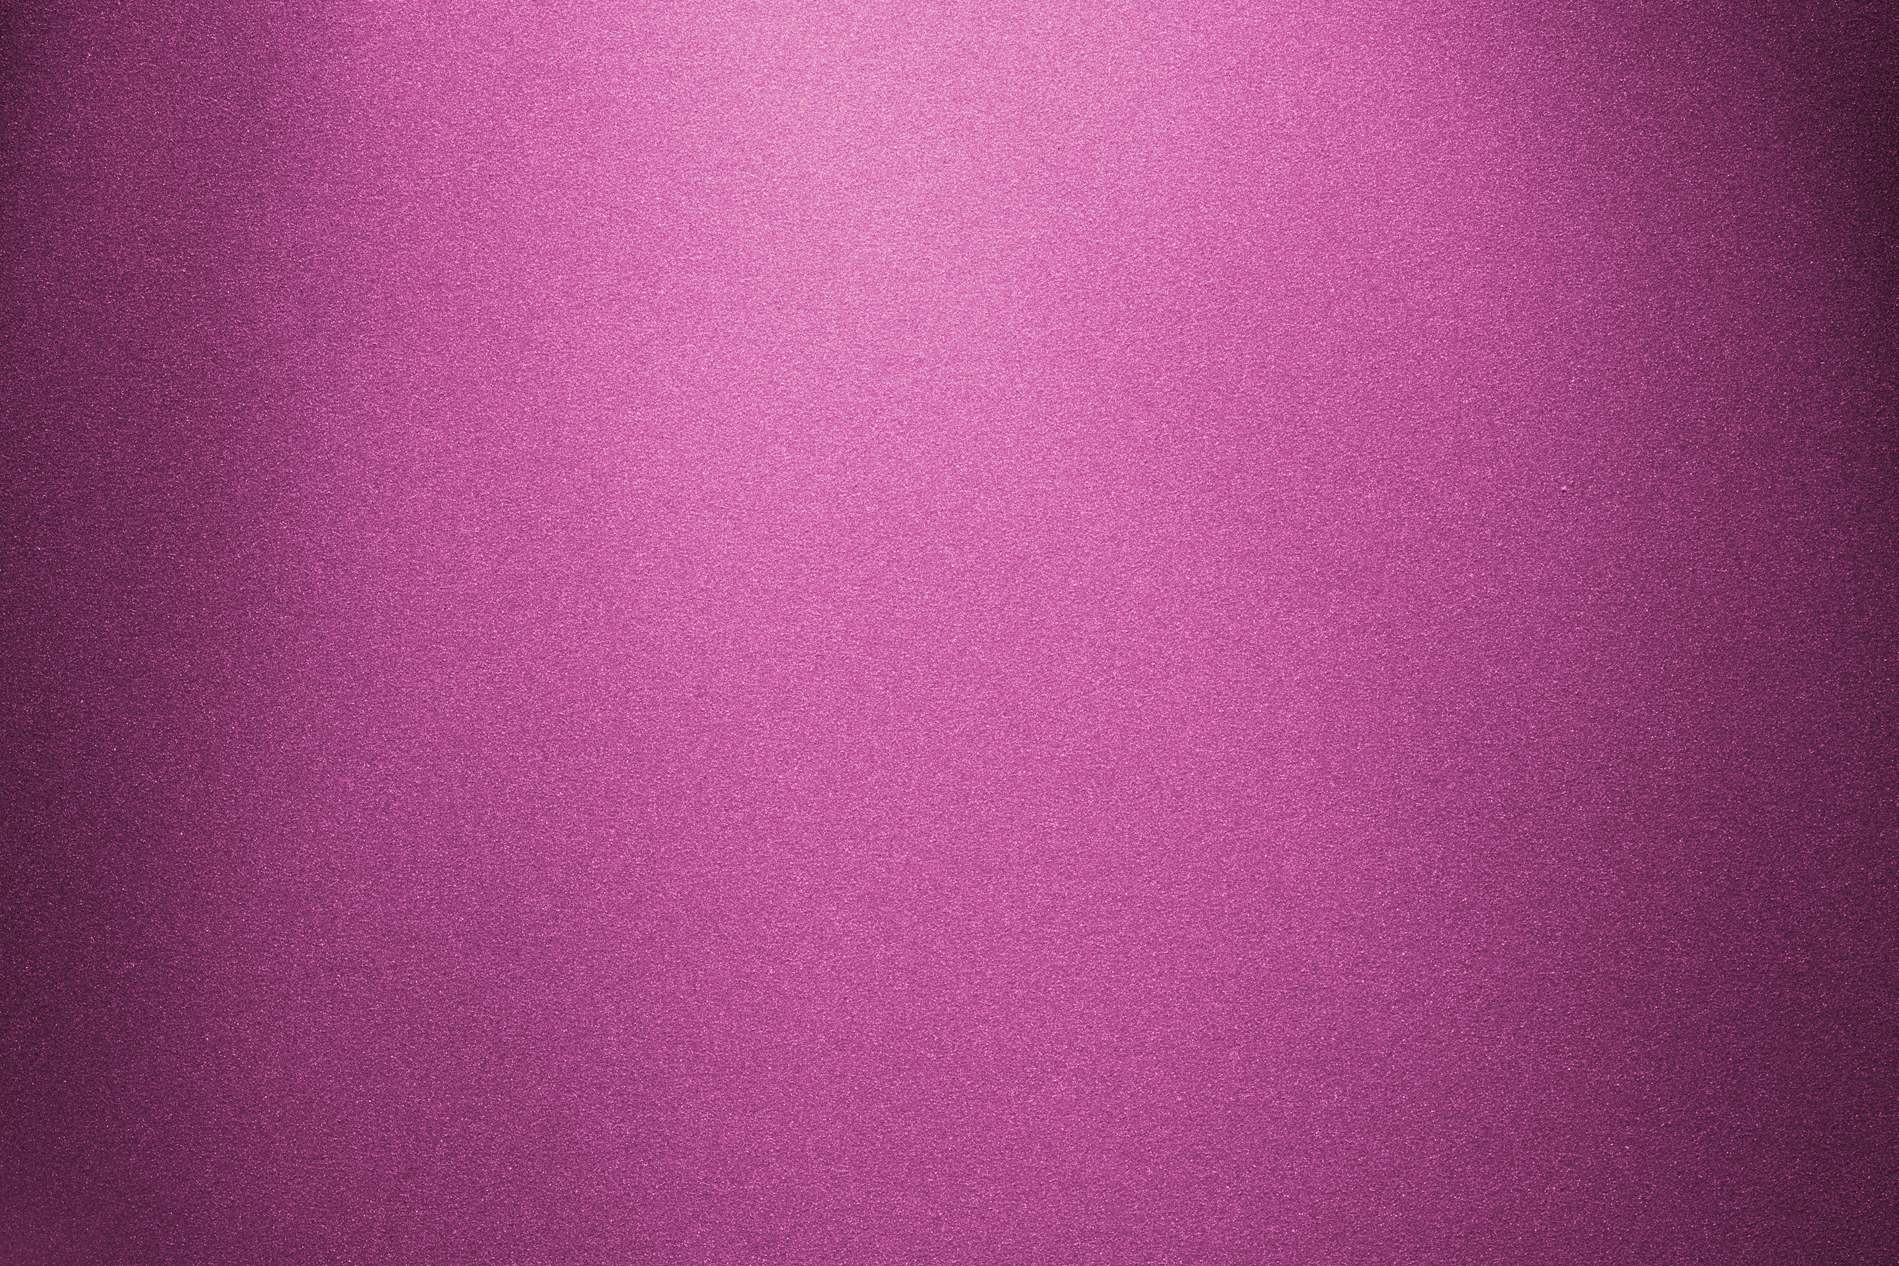 Paint Light Wall Dark Purple